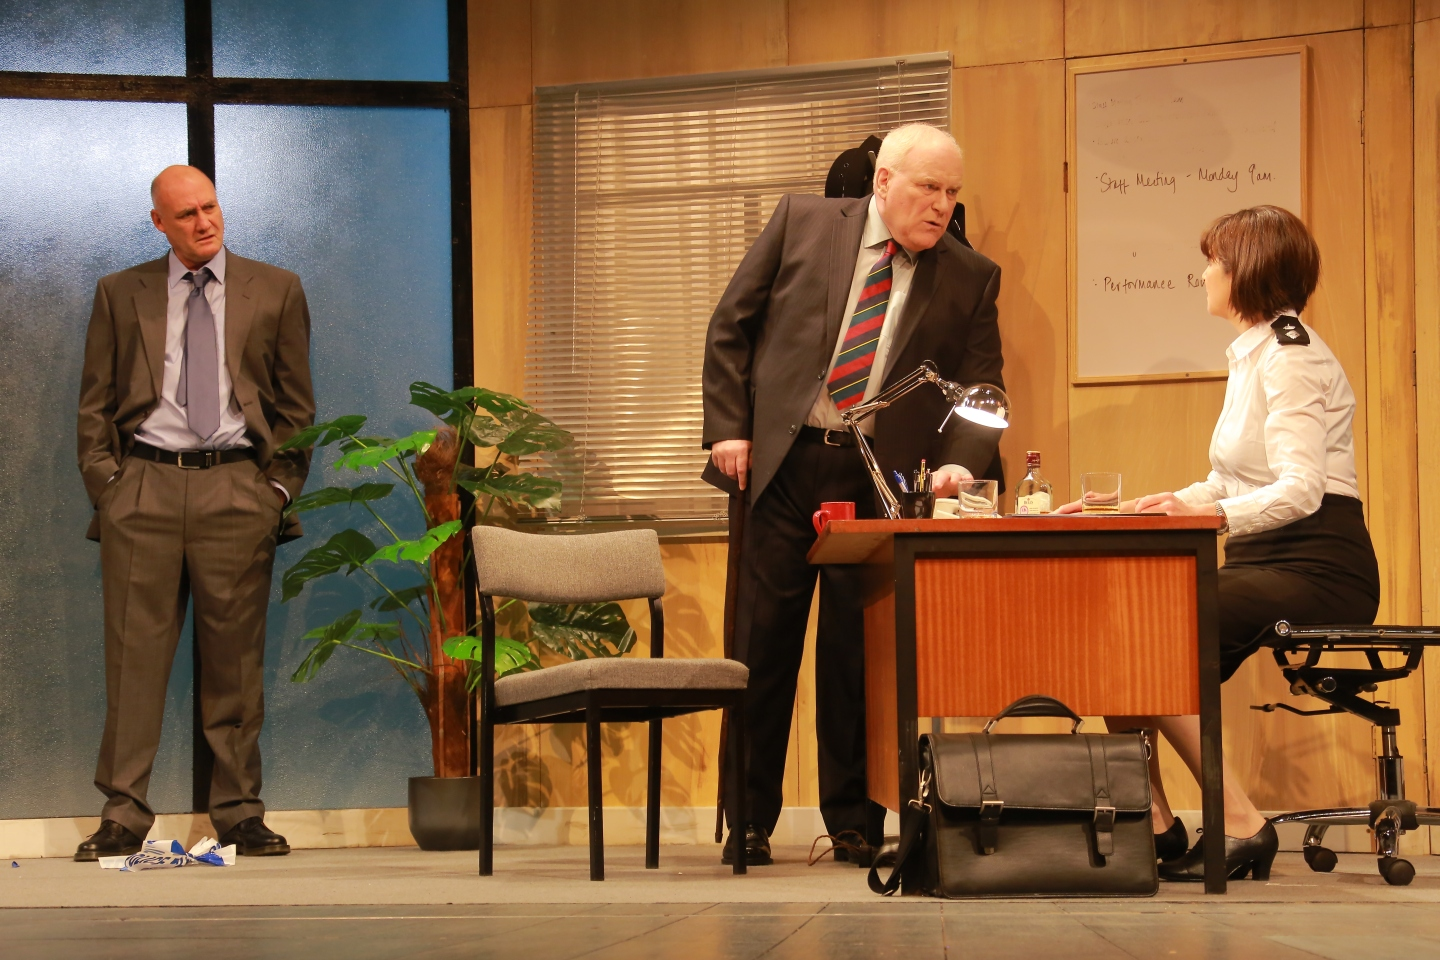 Robert Gwilym as Frank Bowman , Ron Donachie as Fergus McLintock and Maureen Beattie as Isobel McArthur